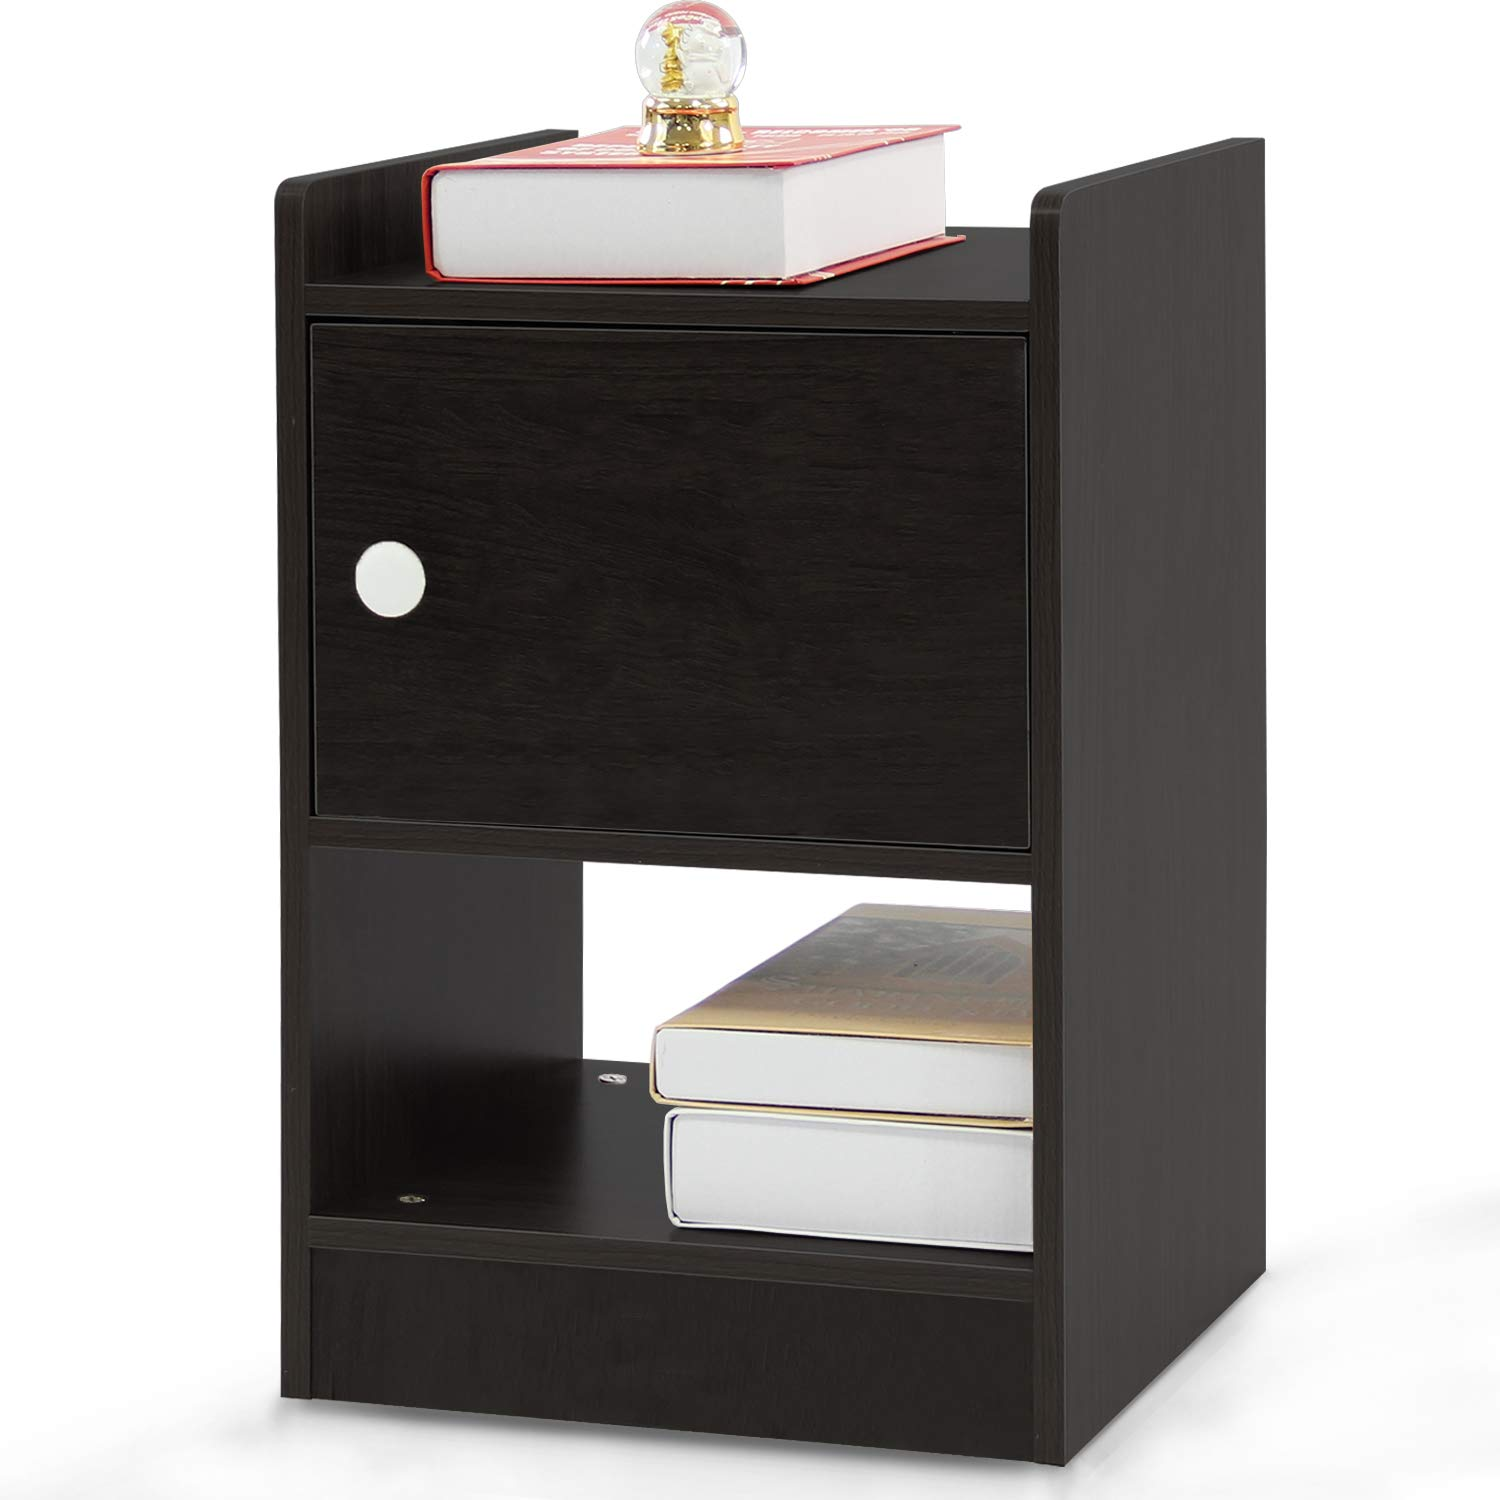 DL furniture-Night Stand/Accent Table with Drawer and Cabinet for Storage (Black) by DL furniture